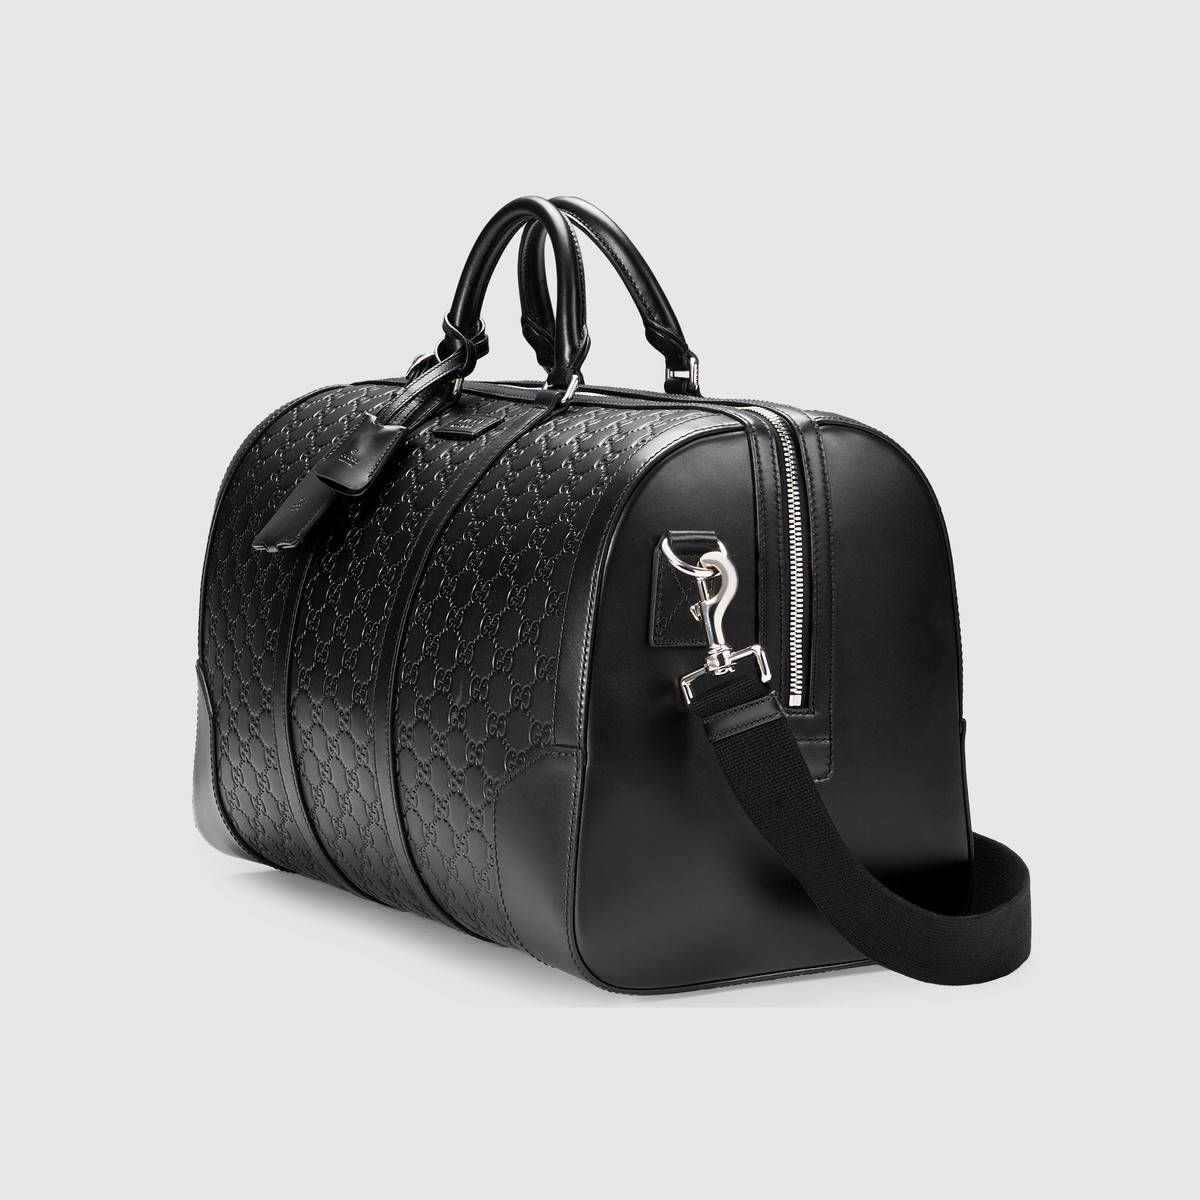 0dc02fedc8 Gucci Signature leather duffle in 2019   Accessories   Leather ...